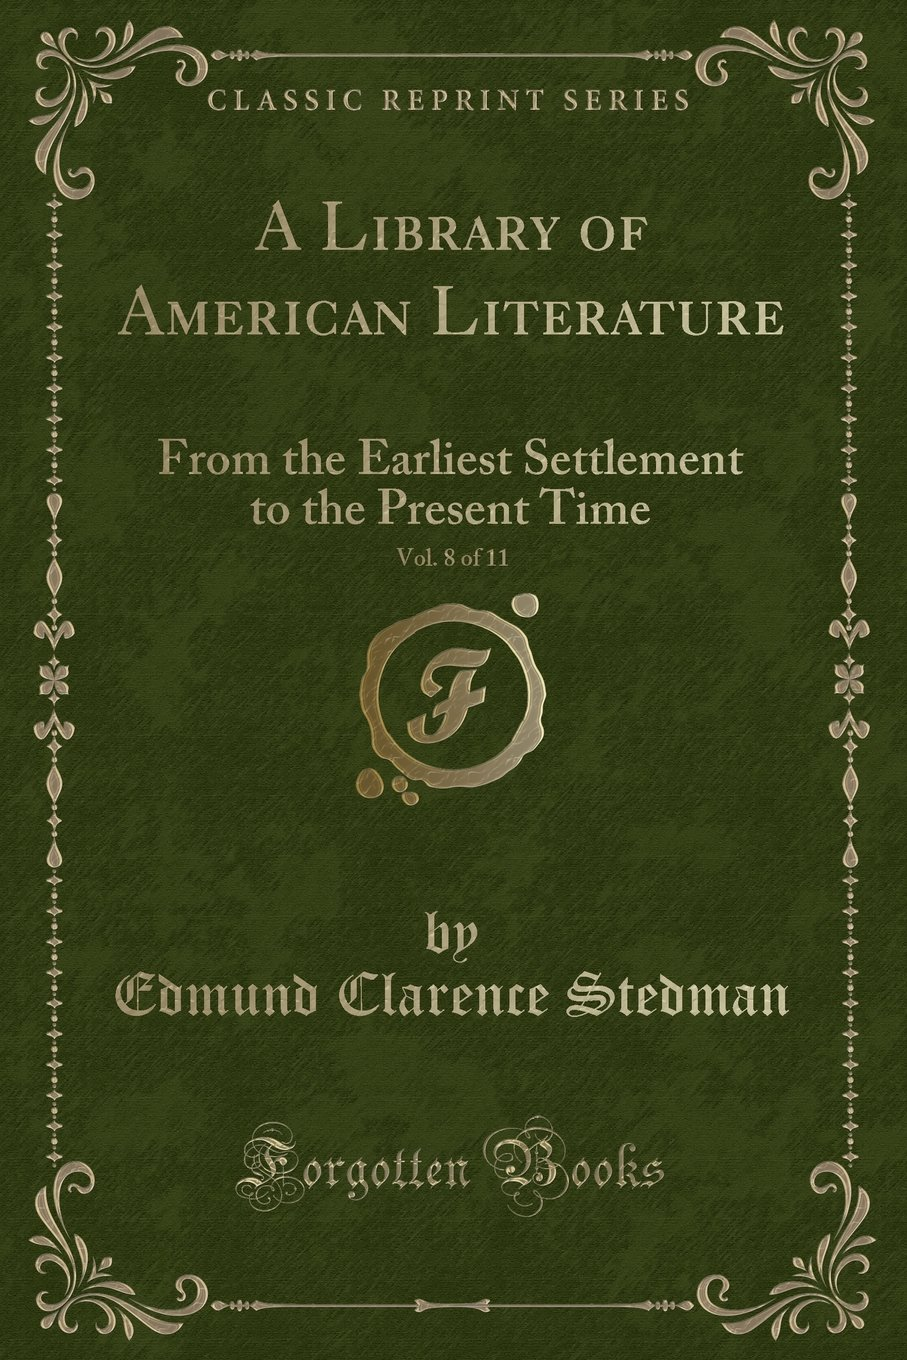 Read Online A Library of American Literature, Vol. 8 of 11: From the Earliest Settlement to the Present Time (Classic Reprint) ebook